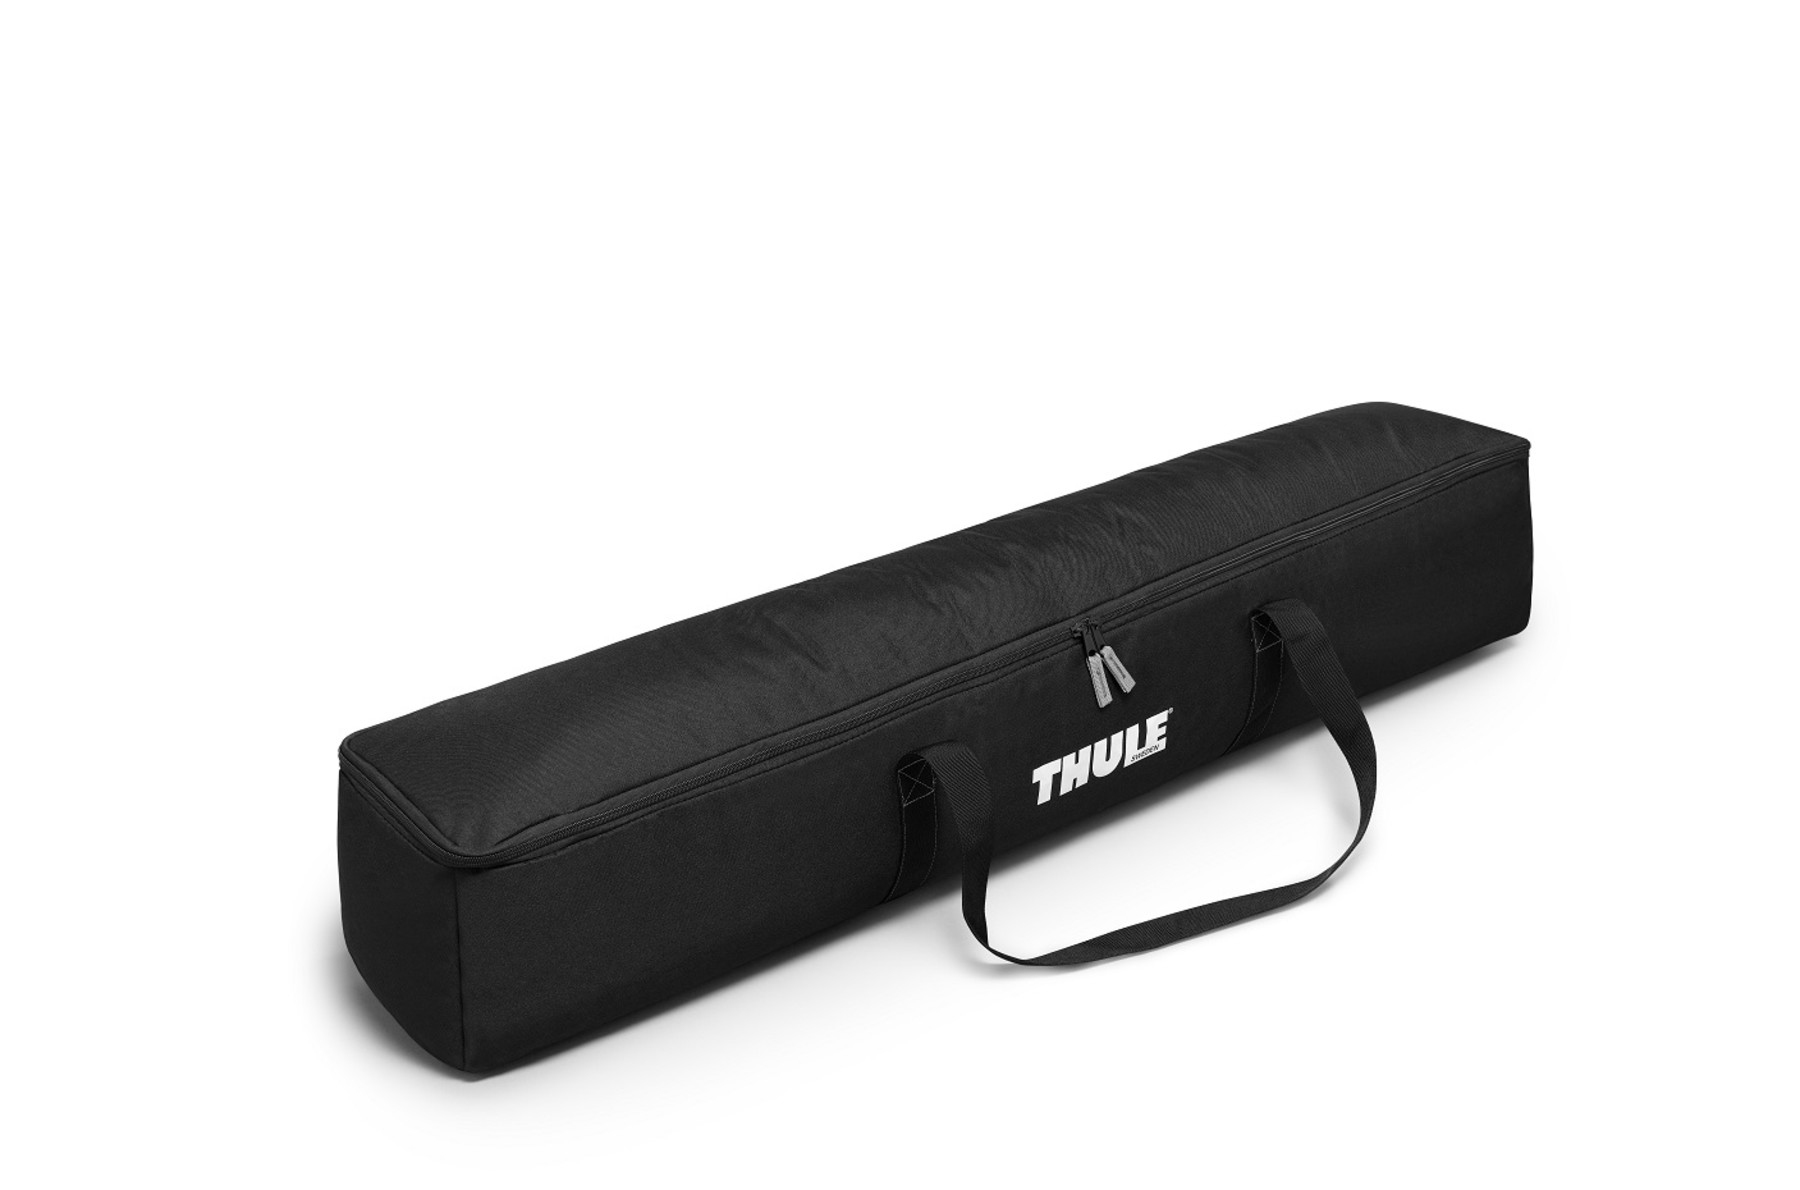 Thule Luxury Bag 307891